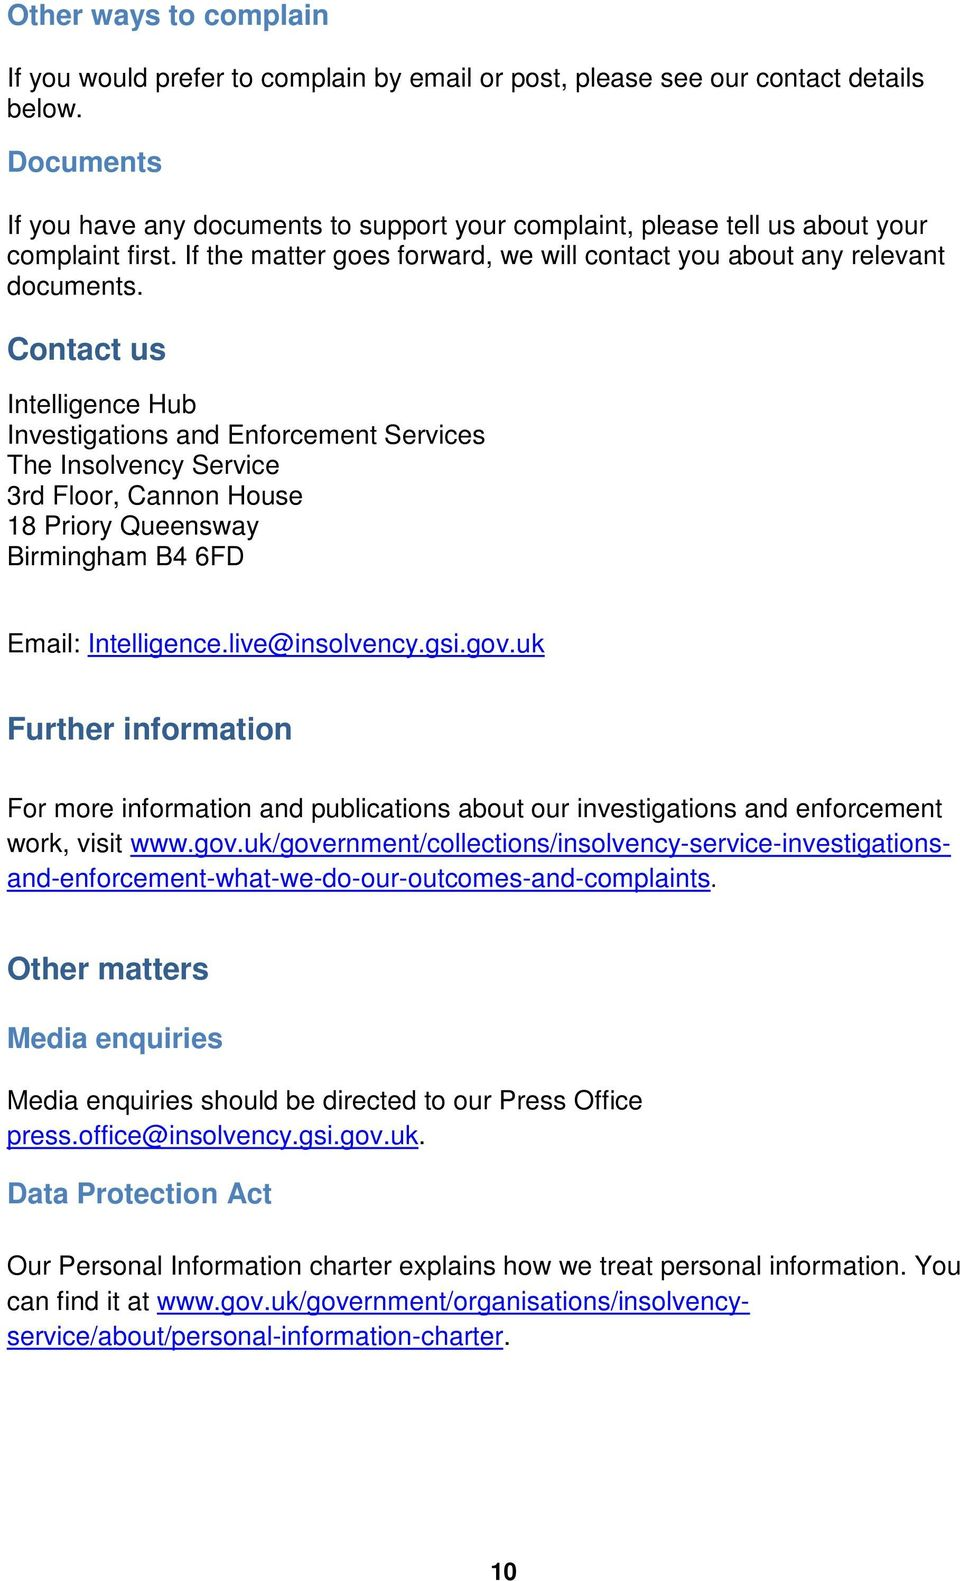 Contact us Intelligence Hub Investigations and Enforcement Services The Insolvency Service 3rd Floor, Cannon House 18 Priory Queensway Birmingham B4 6FD Email: Intelligence.live@insolvency.gsi.gov.